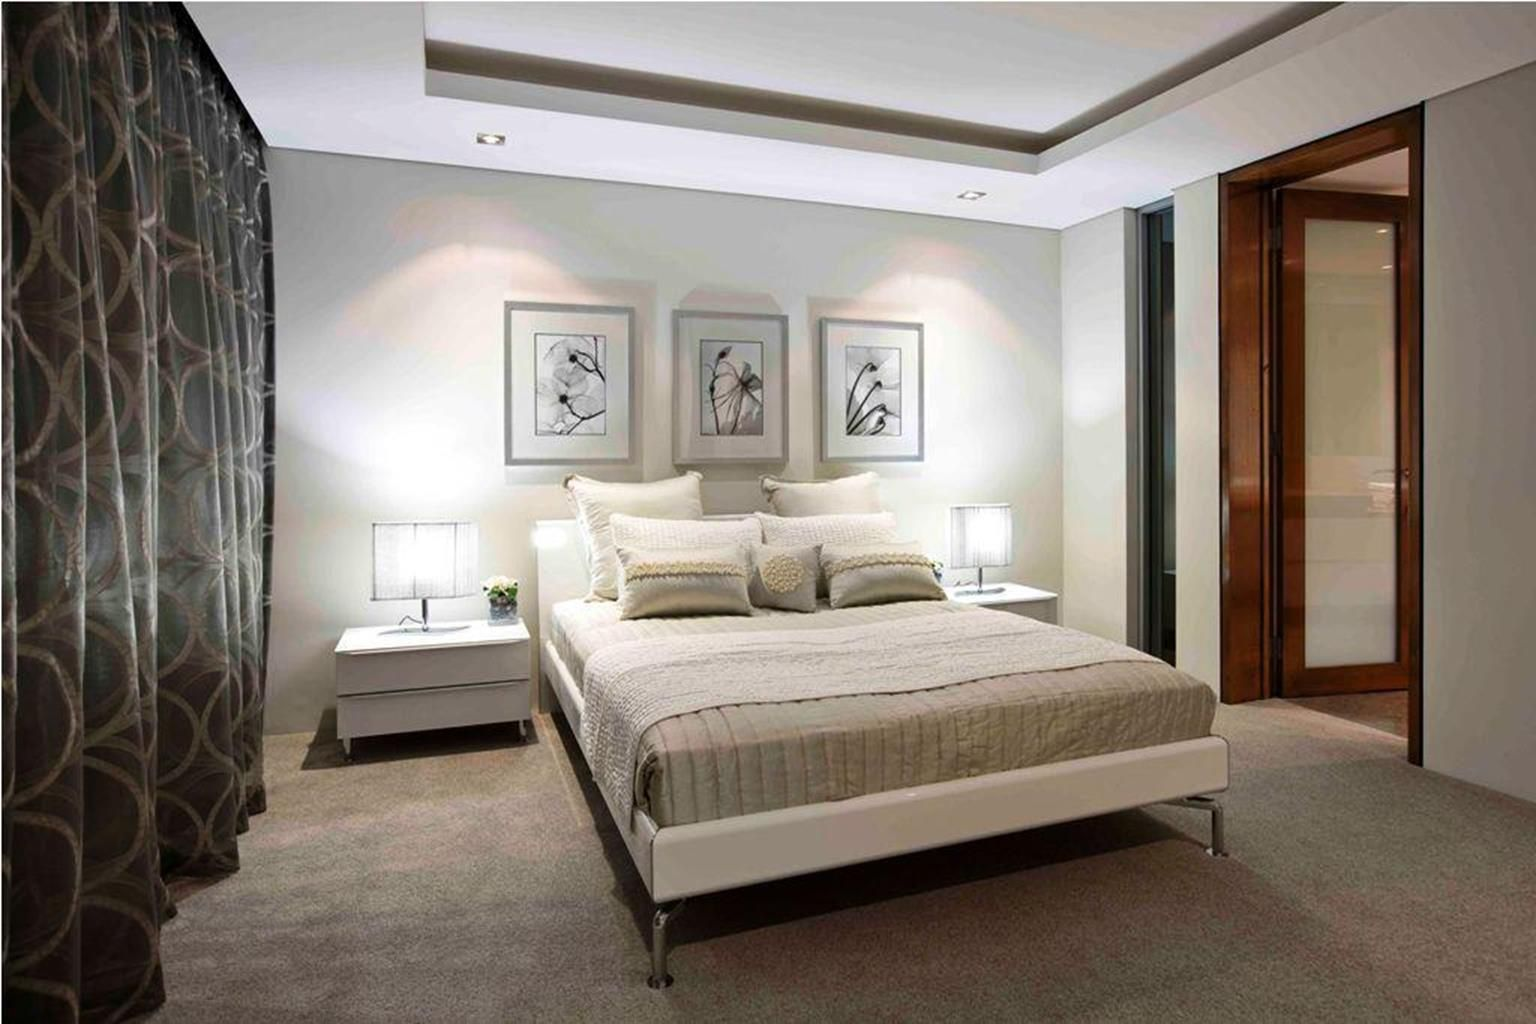 43 Perfect Small Bedroom Decorating Ideas On A Budget Small Guest Rooms Guest Bedroom Decor Guest Bedrooms